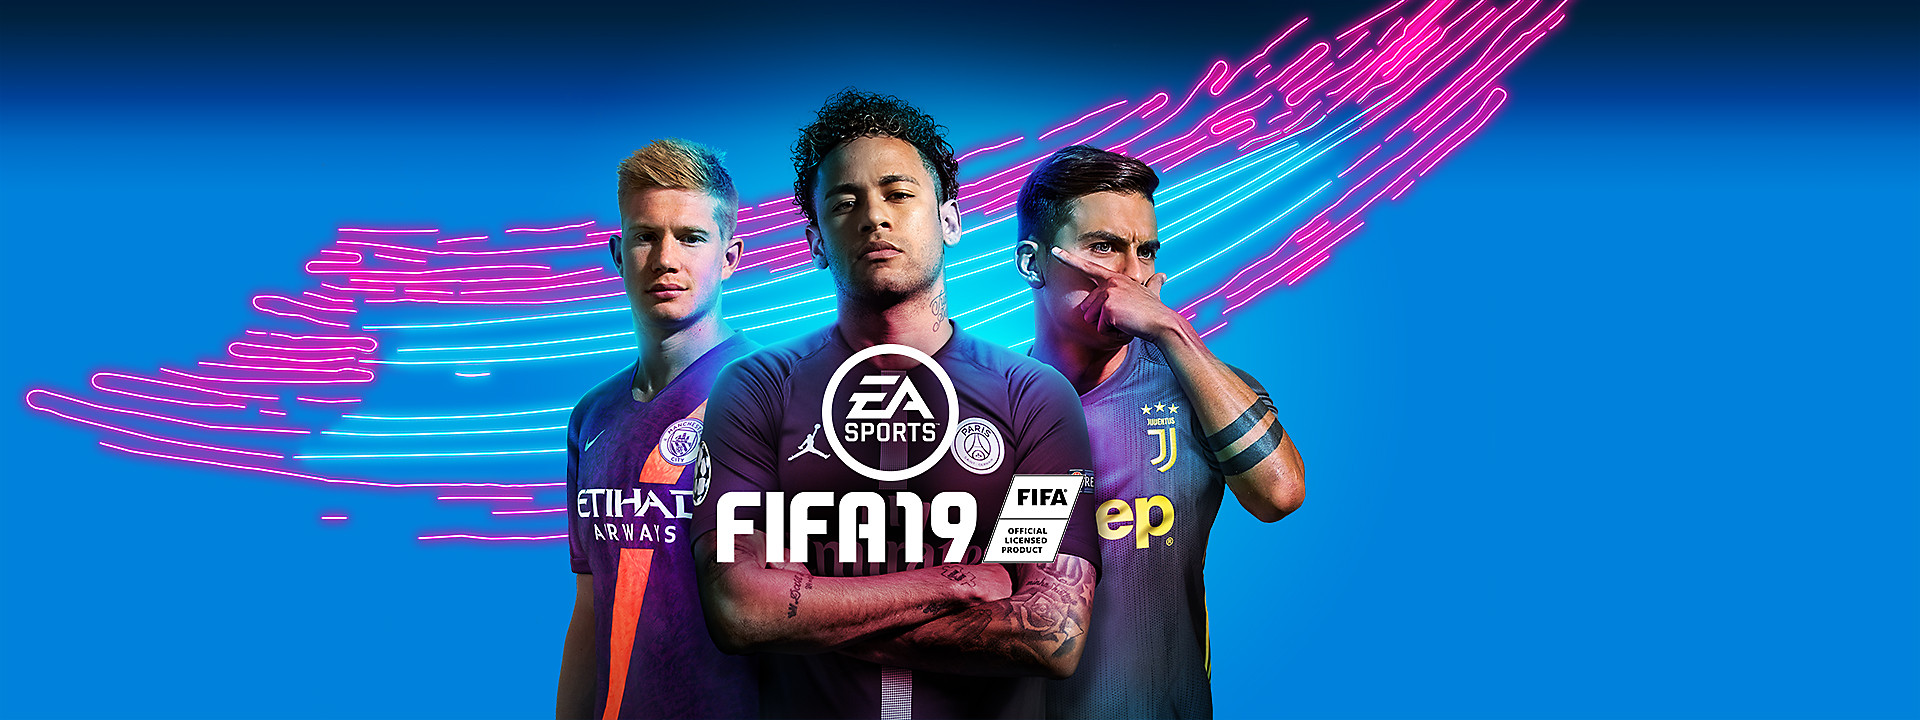 fifa 19 mobile latest version